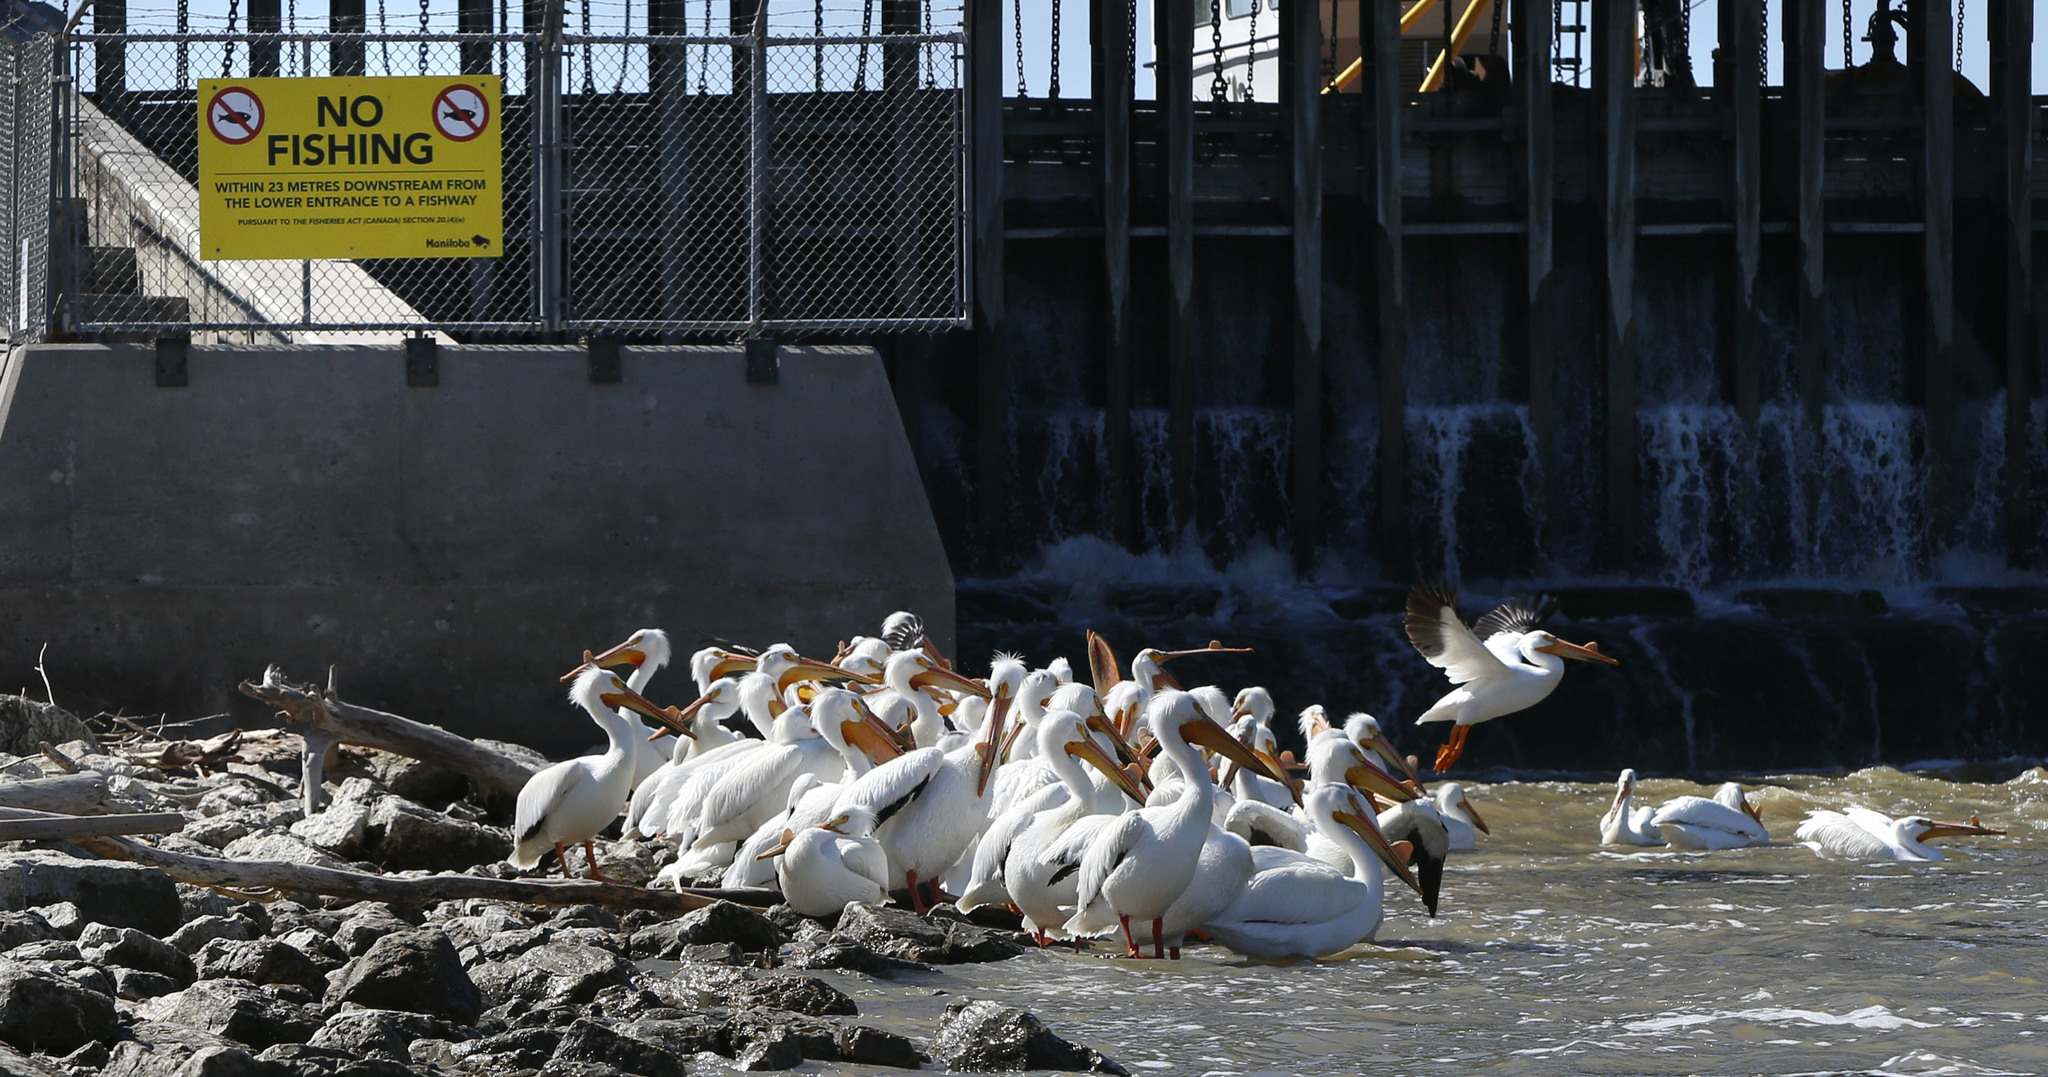 WAYNE GLOWACKI / WINNIPEG FREE PRESS</p><p>Pelicans along the eastern shore of the Red River are safe from discarded fishing line and lures in the special conservation area north of the St. Andrews Lock and Dam Tuesday.</p></p>